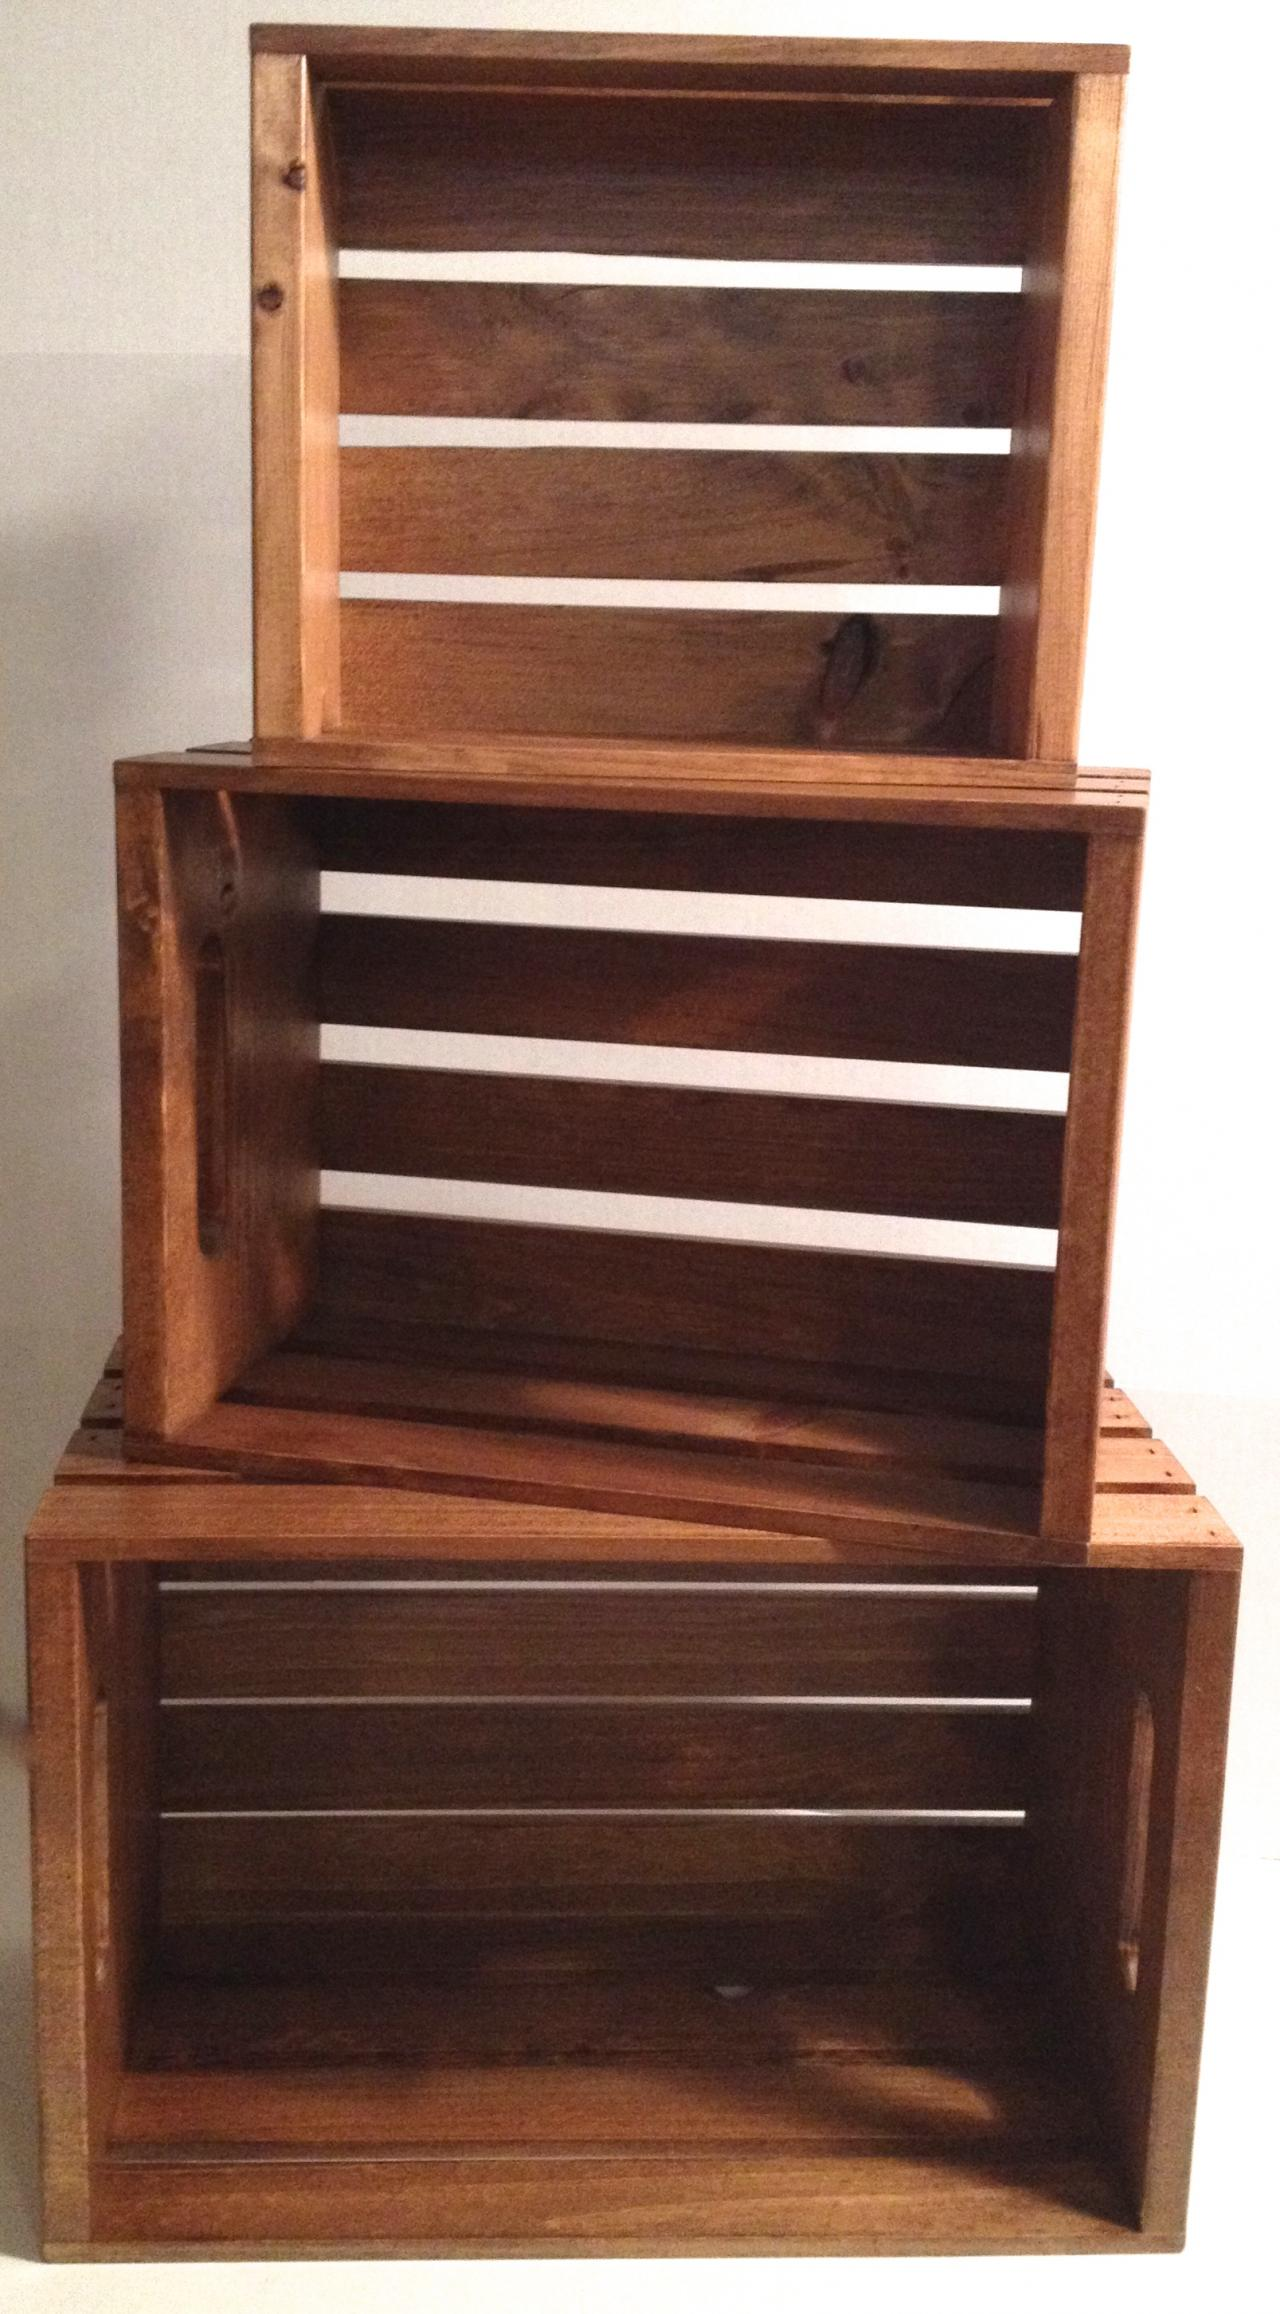 rustic wood dark stained stacking crates display market country store  grocer. Rustic Wood Retail Store Product Display Fixtures   Shelving